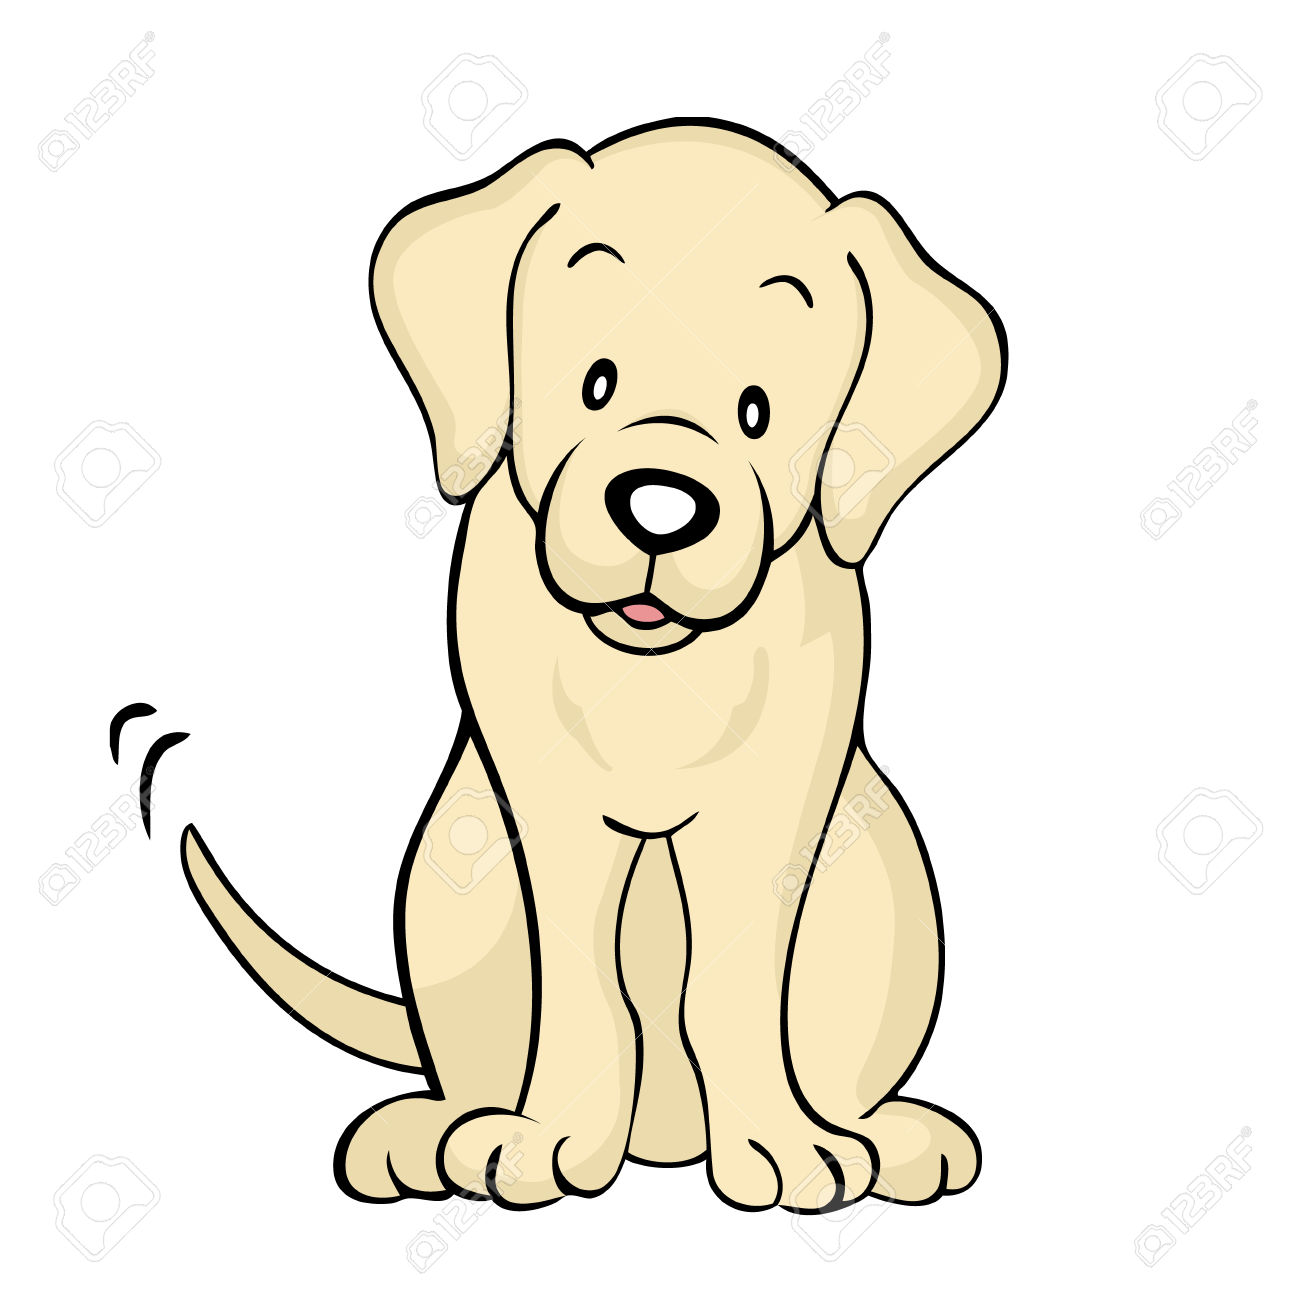 cute puppy clipart at getdrawings com free for personal use cute rh getdrawings com Cute Dog Clip Art Free Cute Puppy Love